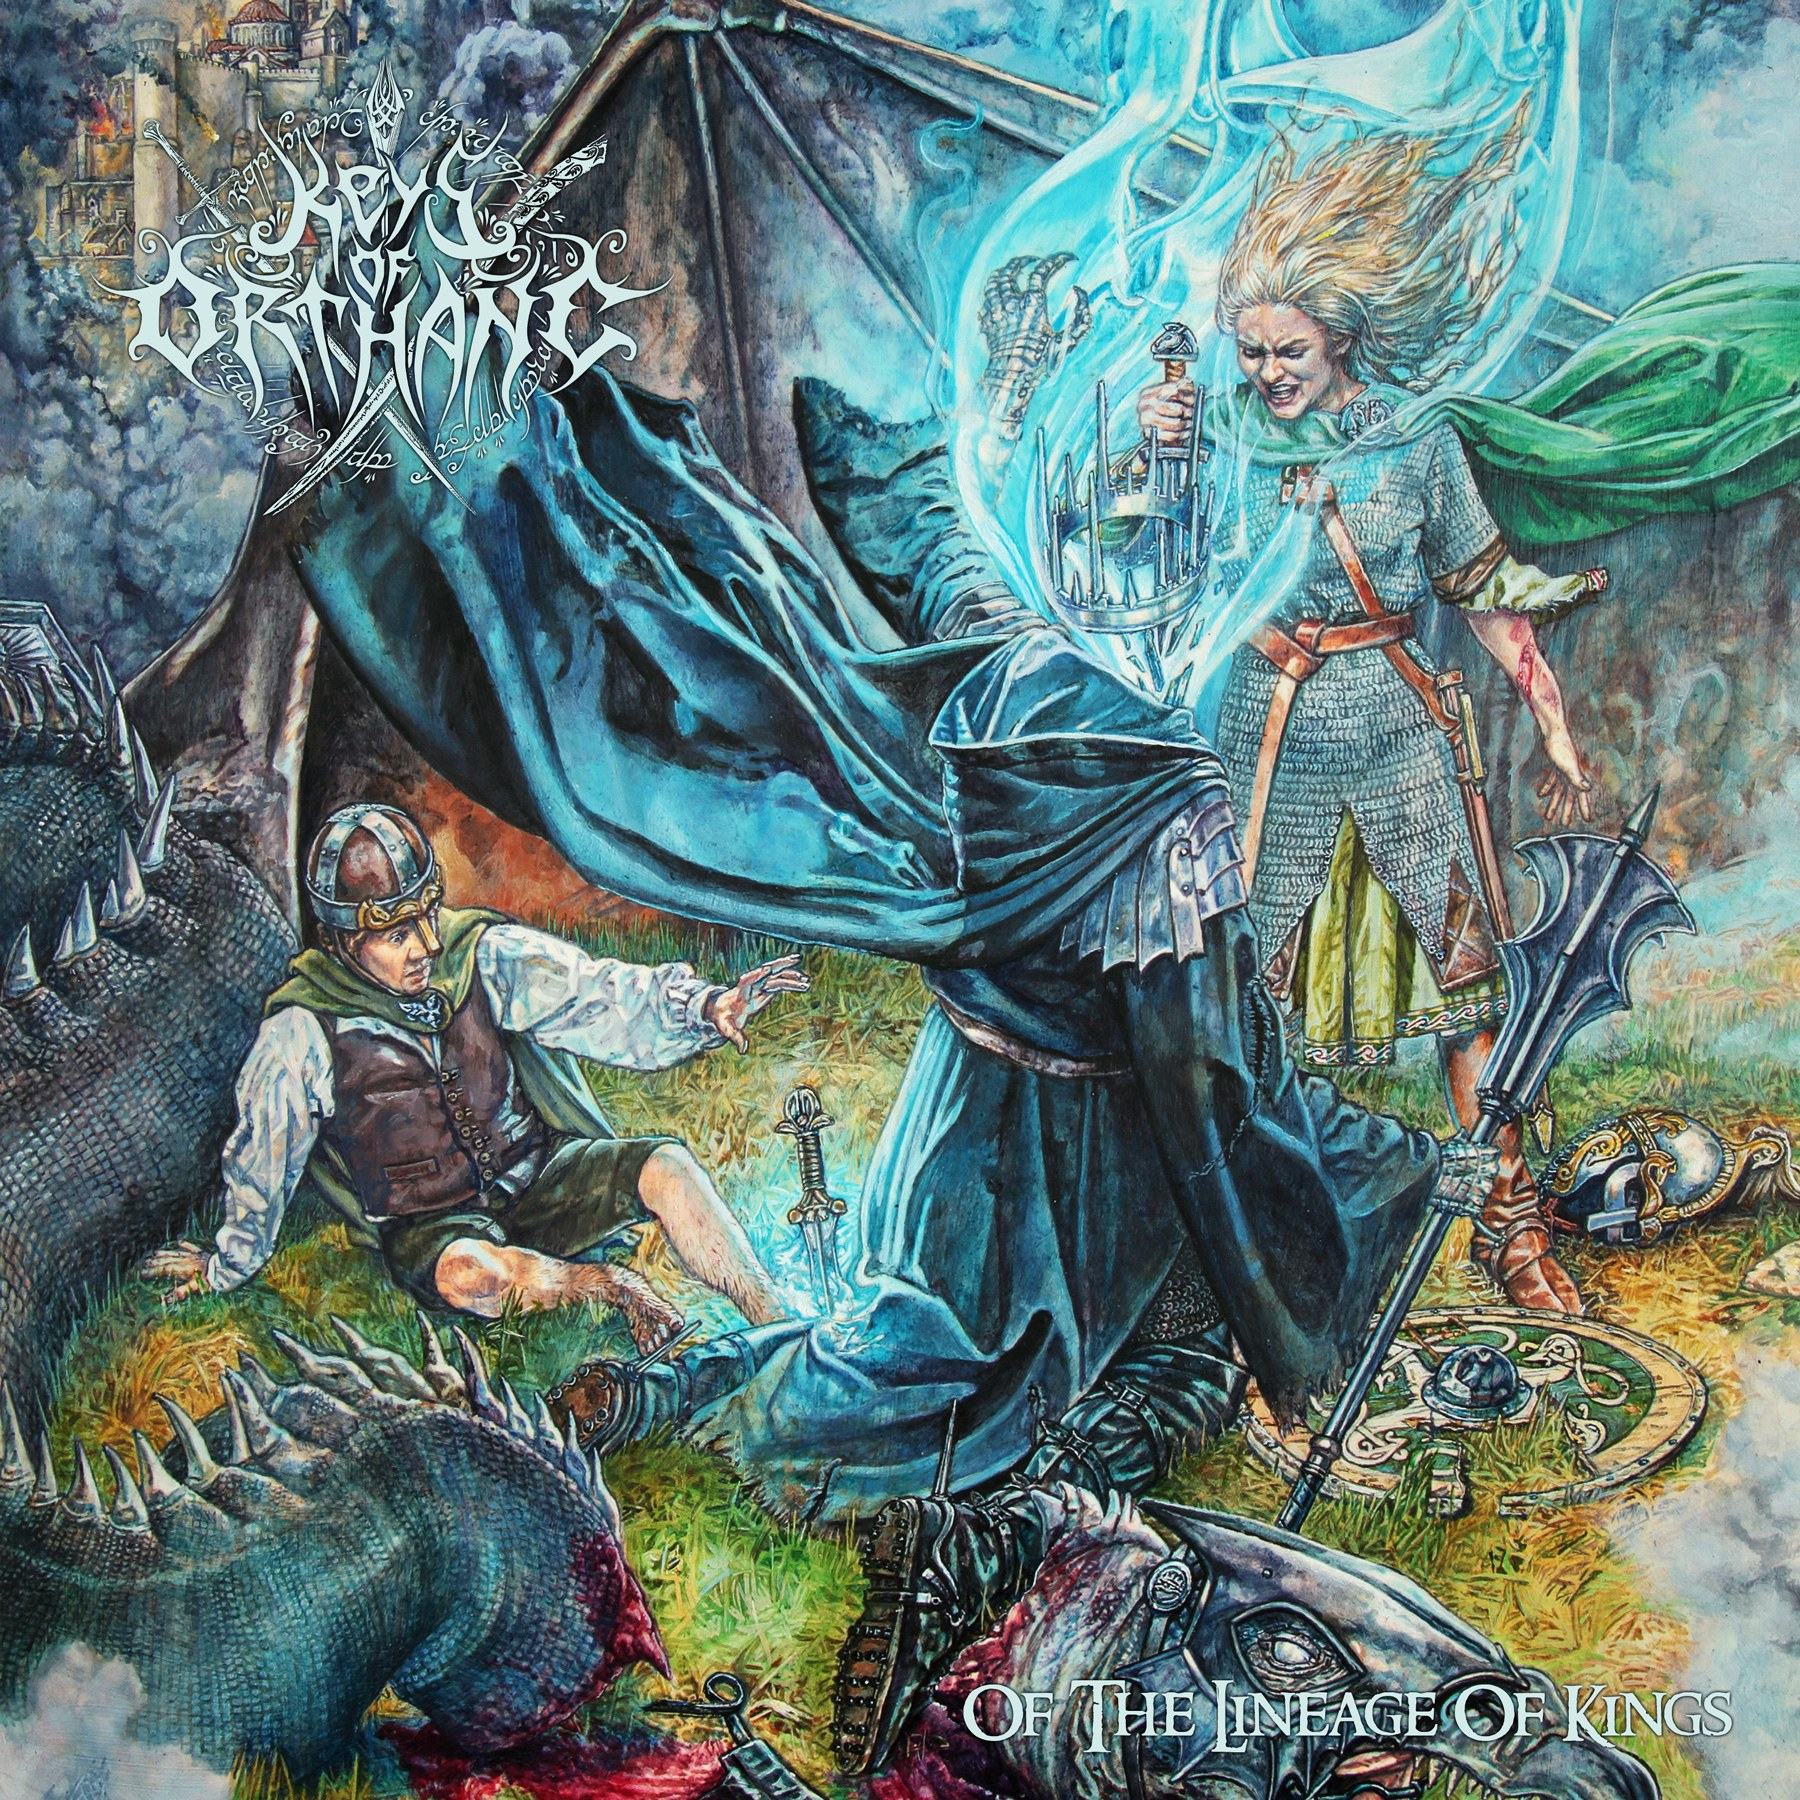 Reviews for Keys of Orthanc - Of the Lineage of Kings